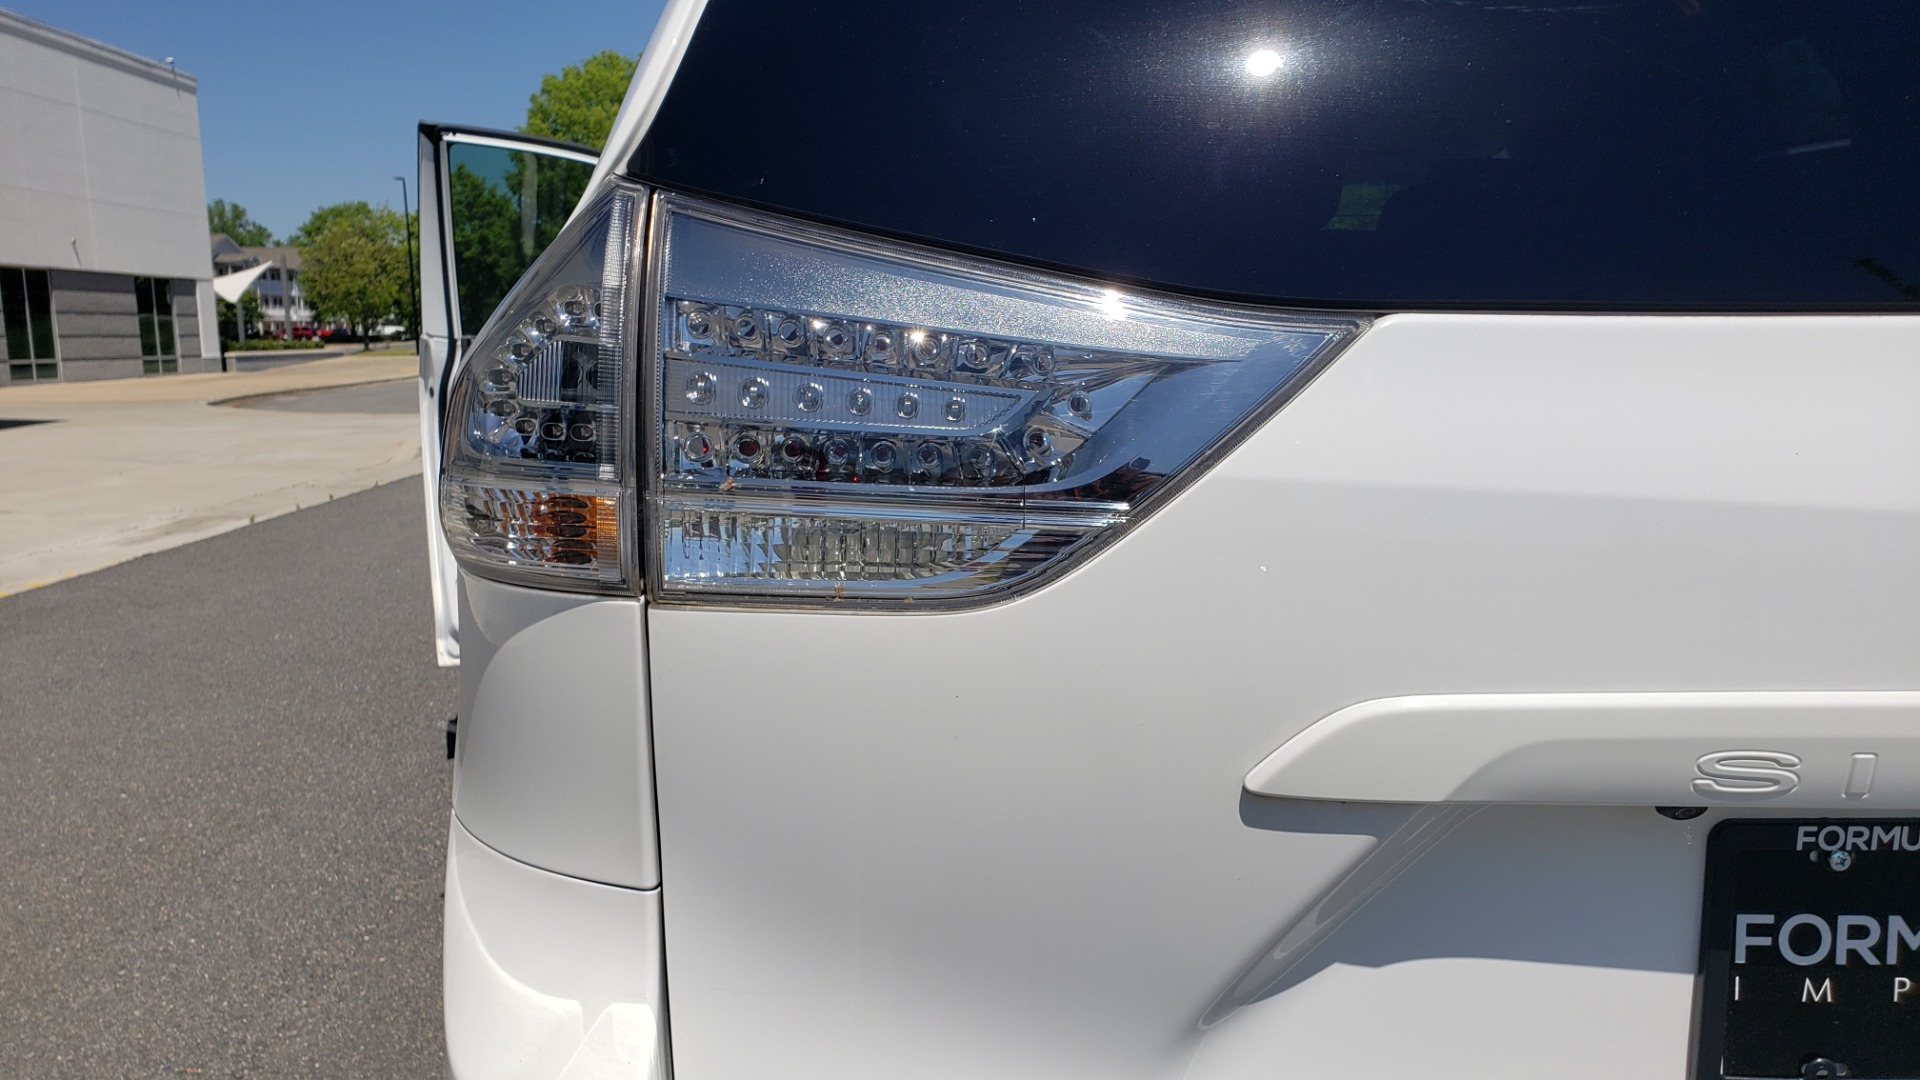 Used 2015 Toyota SIENNA SE 3.5L / FWD / 3-ROWS / 8-PASS / SUNROOF / DVD / REARVIEW for sale $21,995 at Formula Imports in Charlotte NC 28227 30